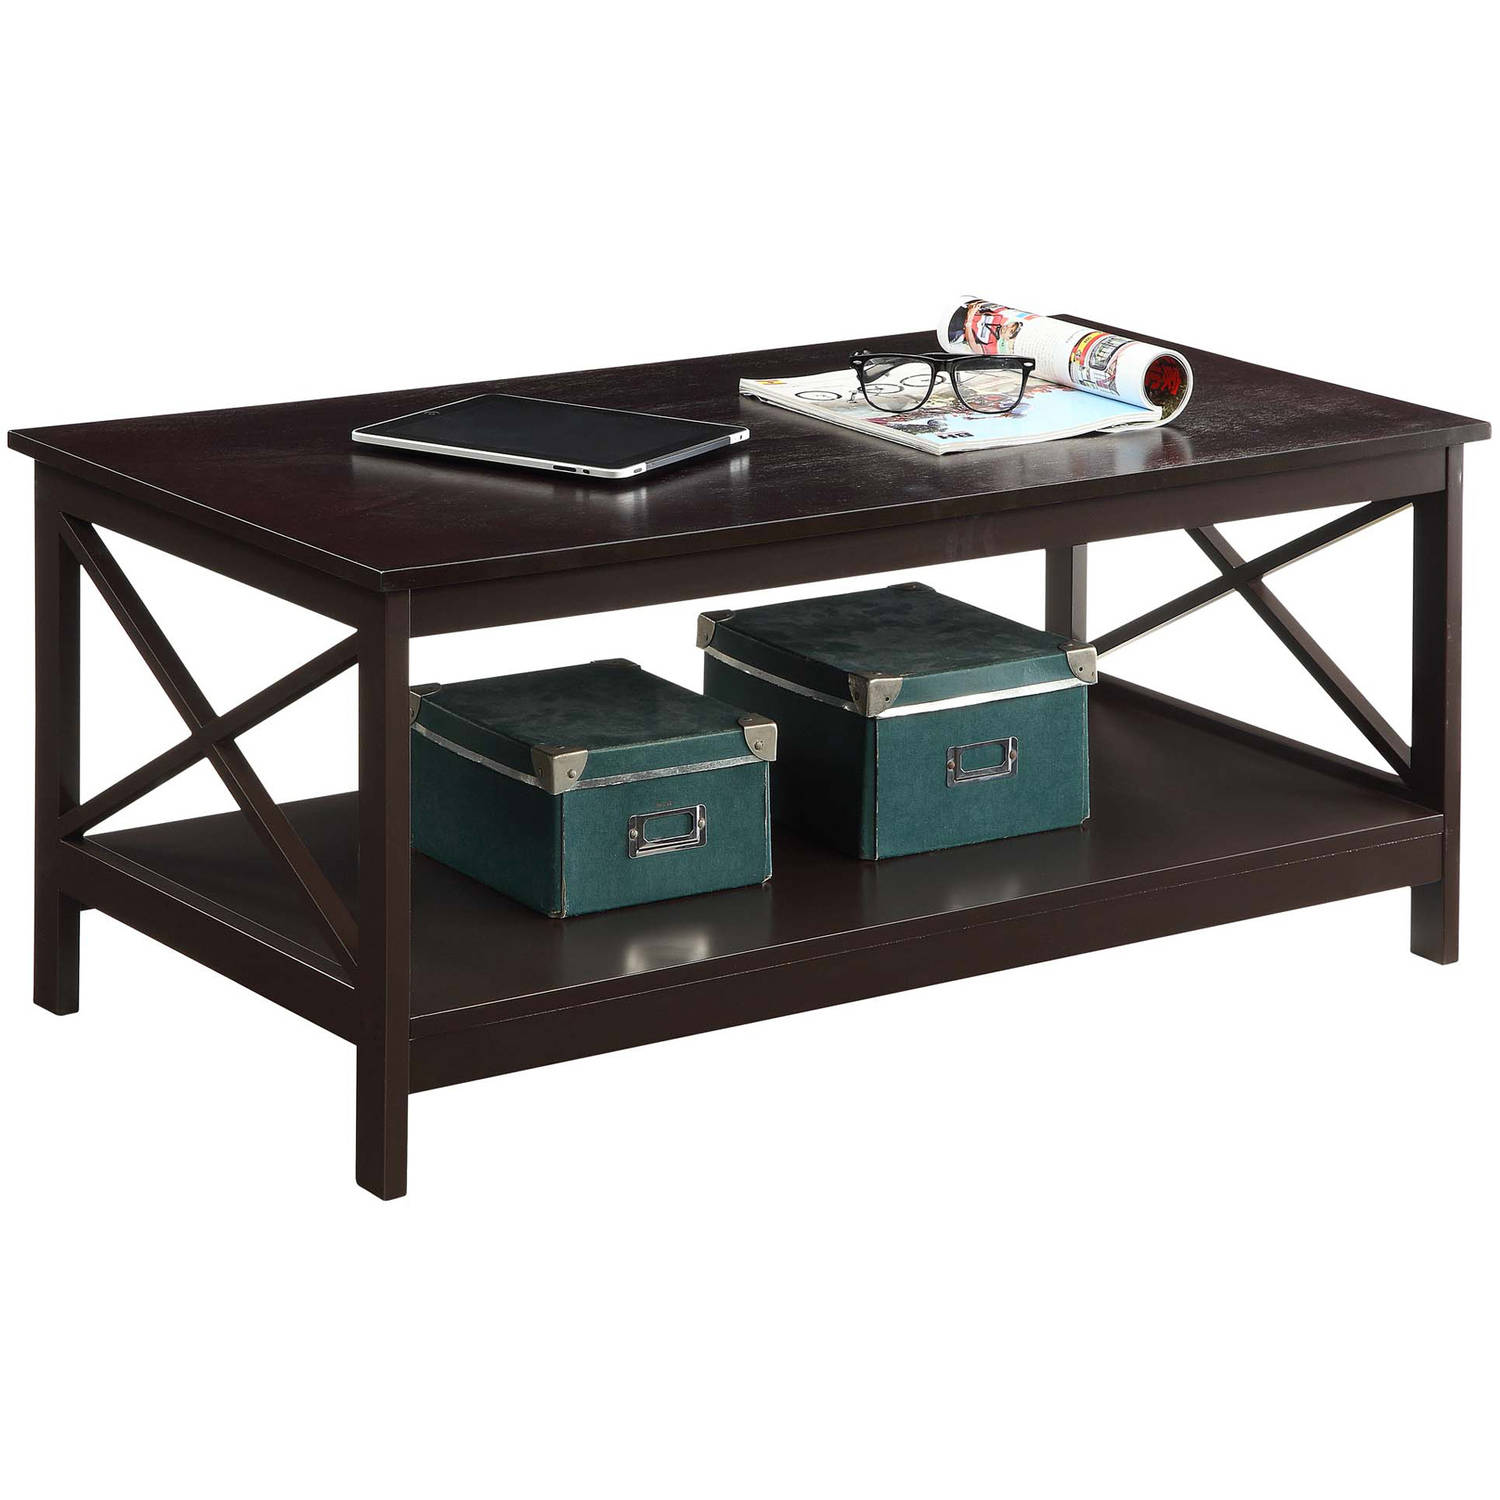 Convenience Concepts Oxford Coffee Table, Multiple Colors   Walmart.com